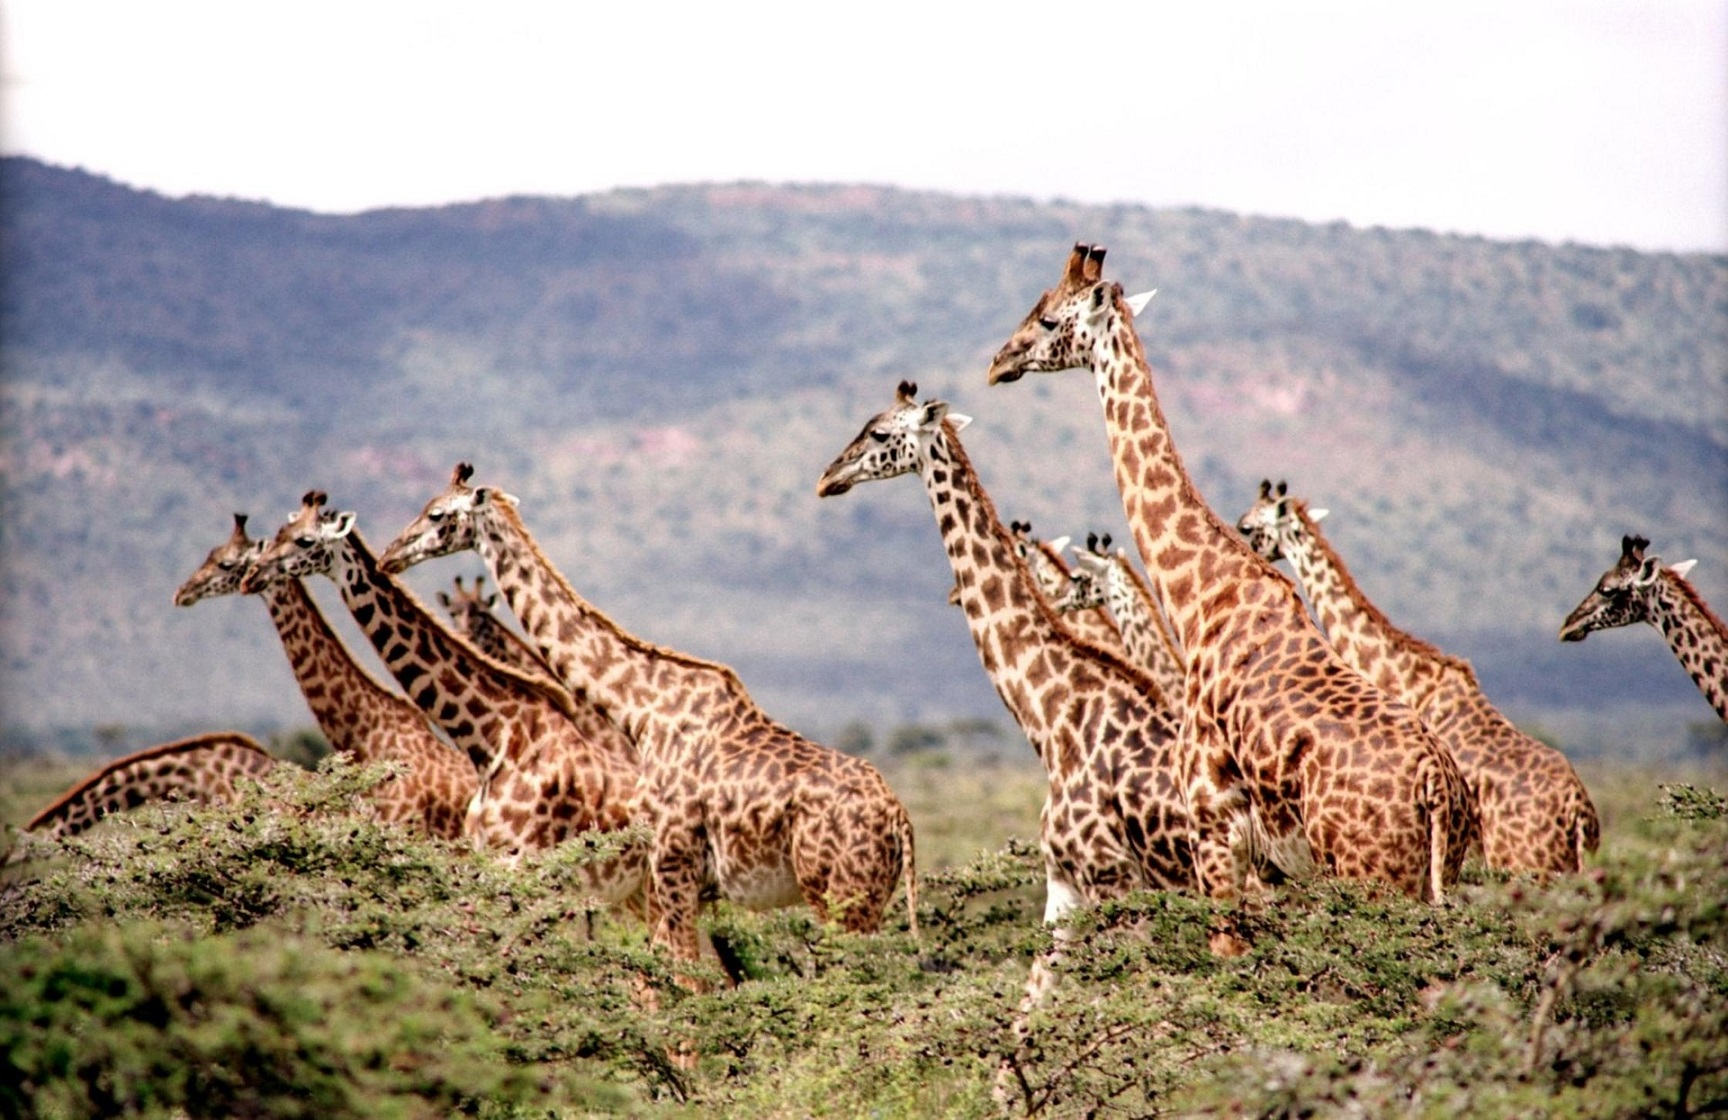 The Quiet Endangerment of The Tallest Mammals